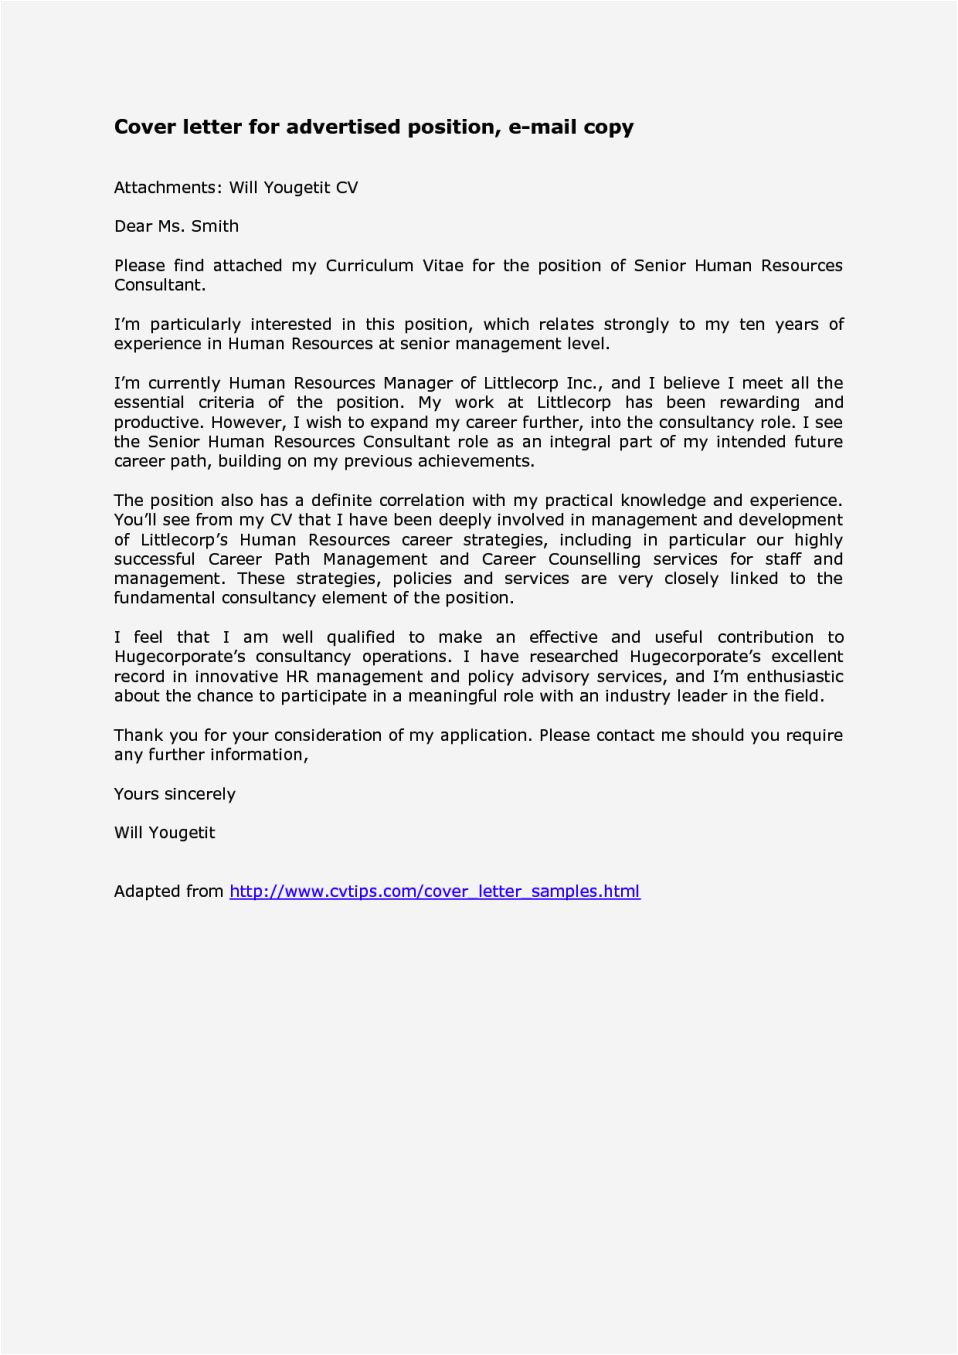 email cover letter sample with attached resume